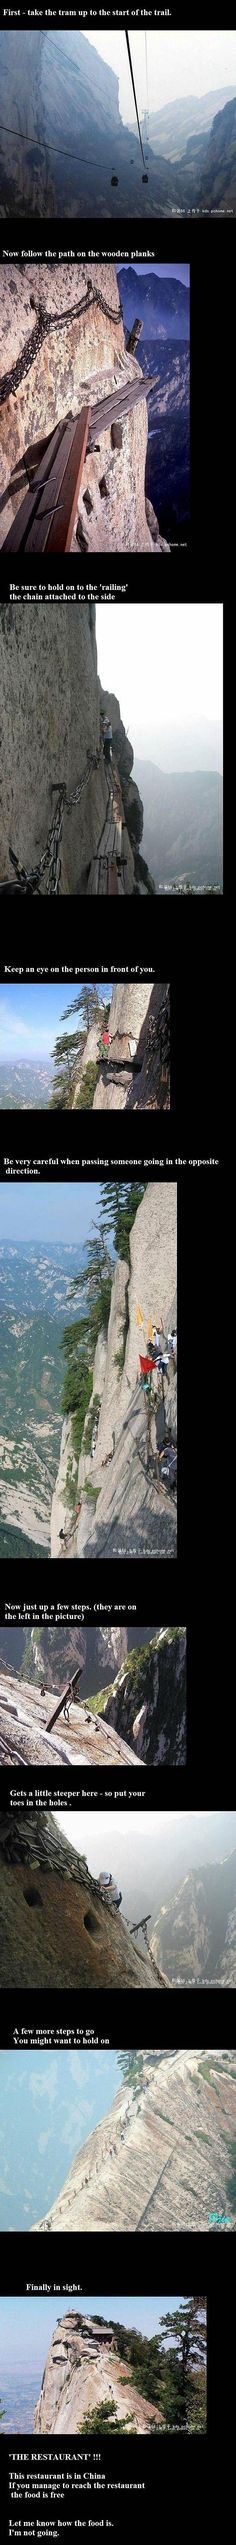 China-restaurant-mountains. Just a thought! What if it were closed!!!